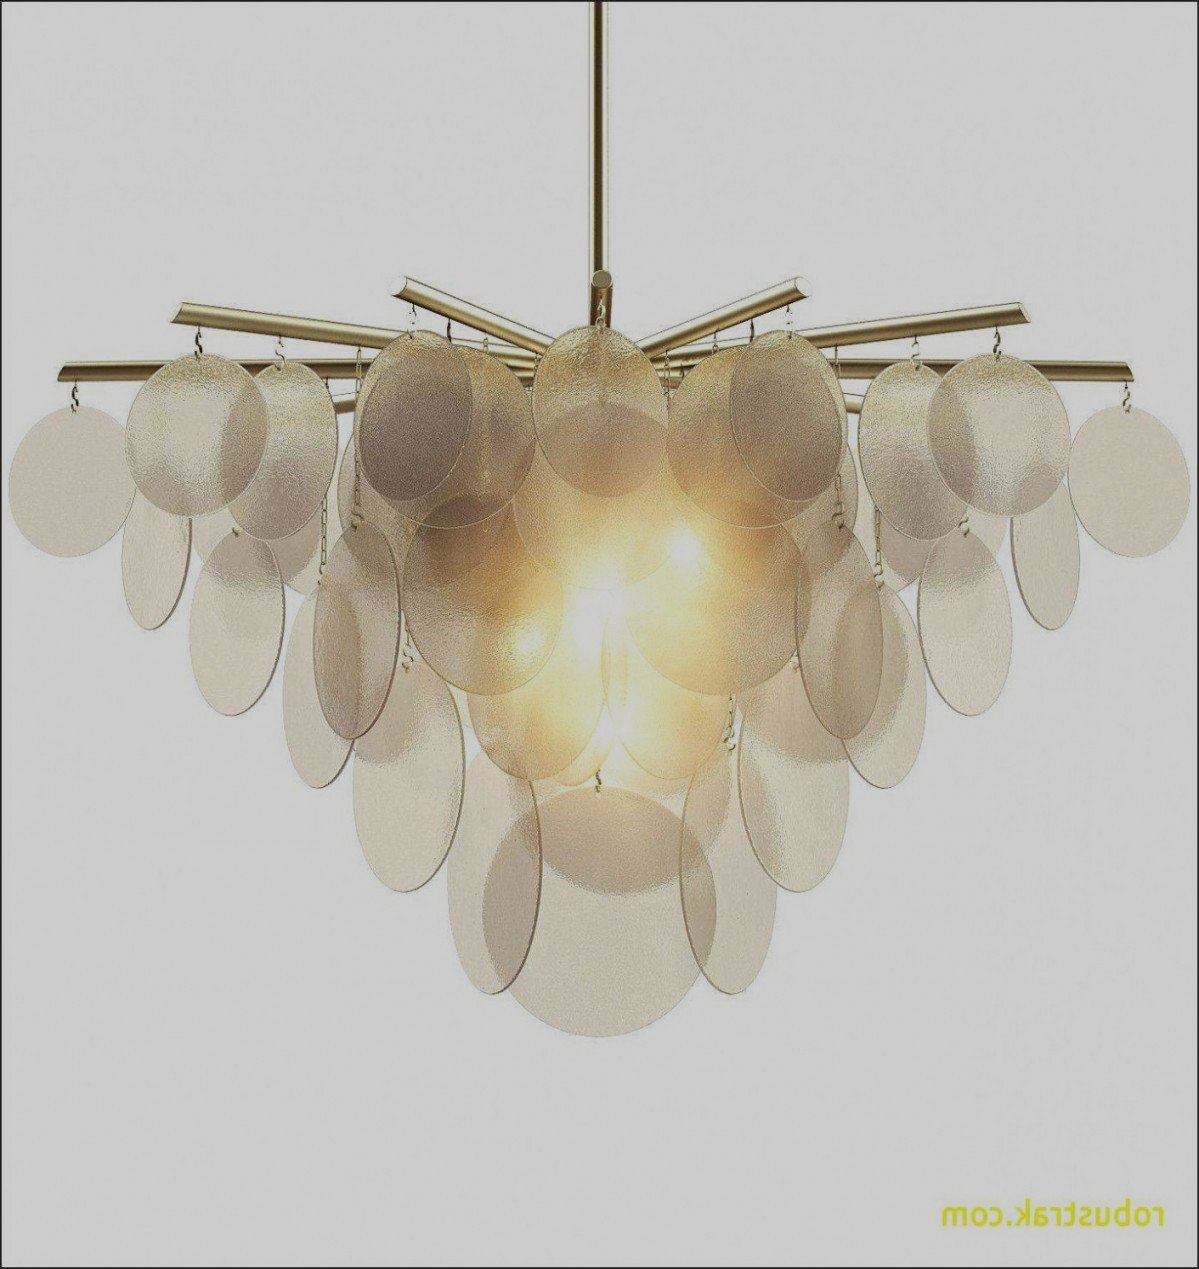 Chandelier Lighting for Bedroom Luxury Flush Mount Chandelier Elegant Pendant Light Revit